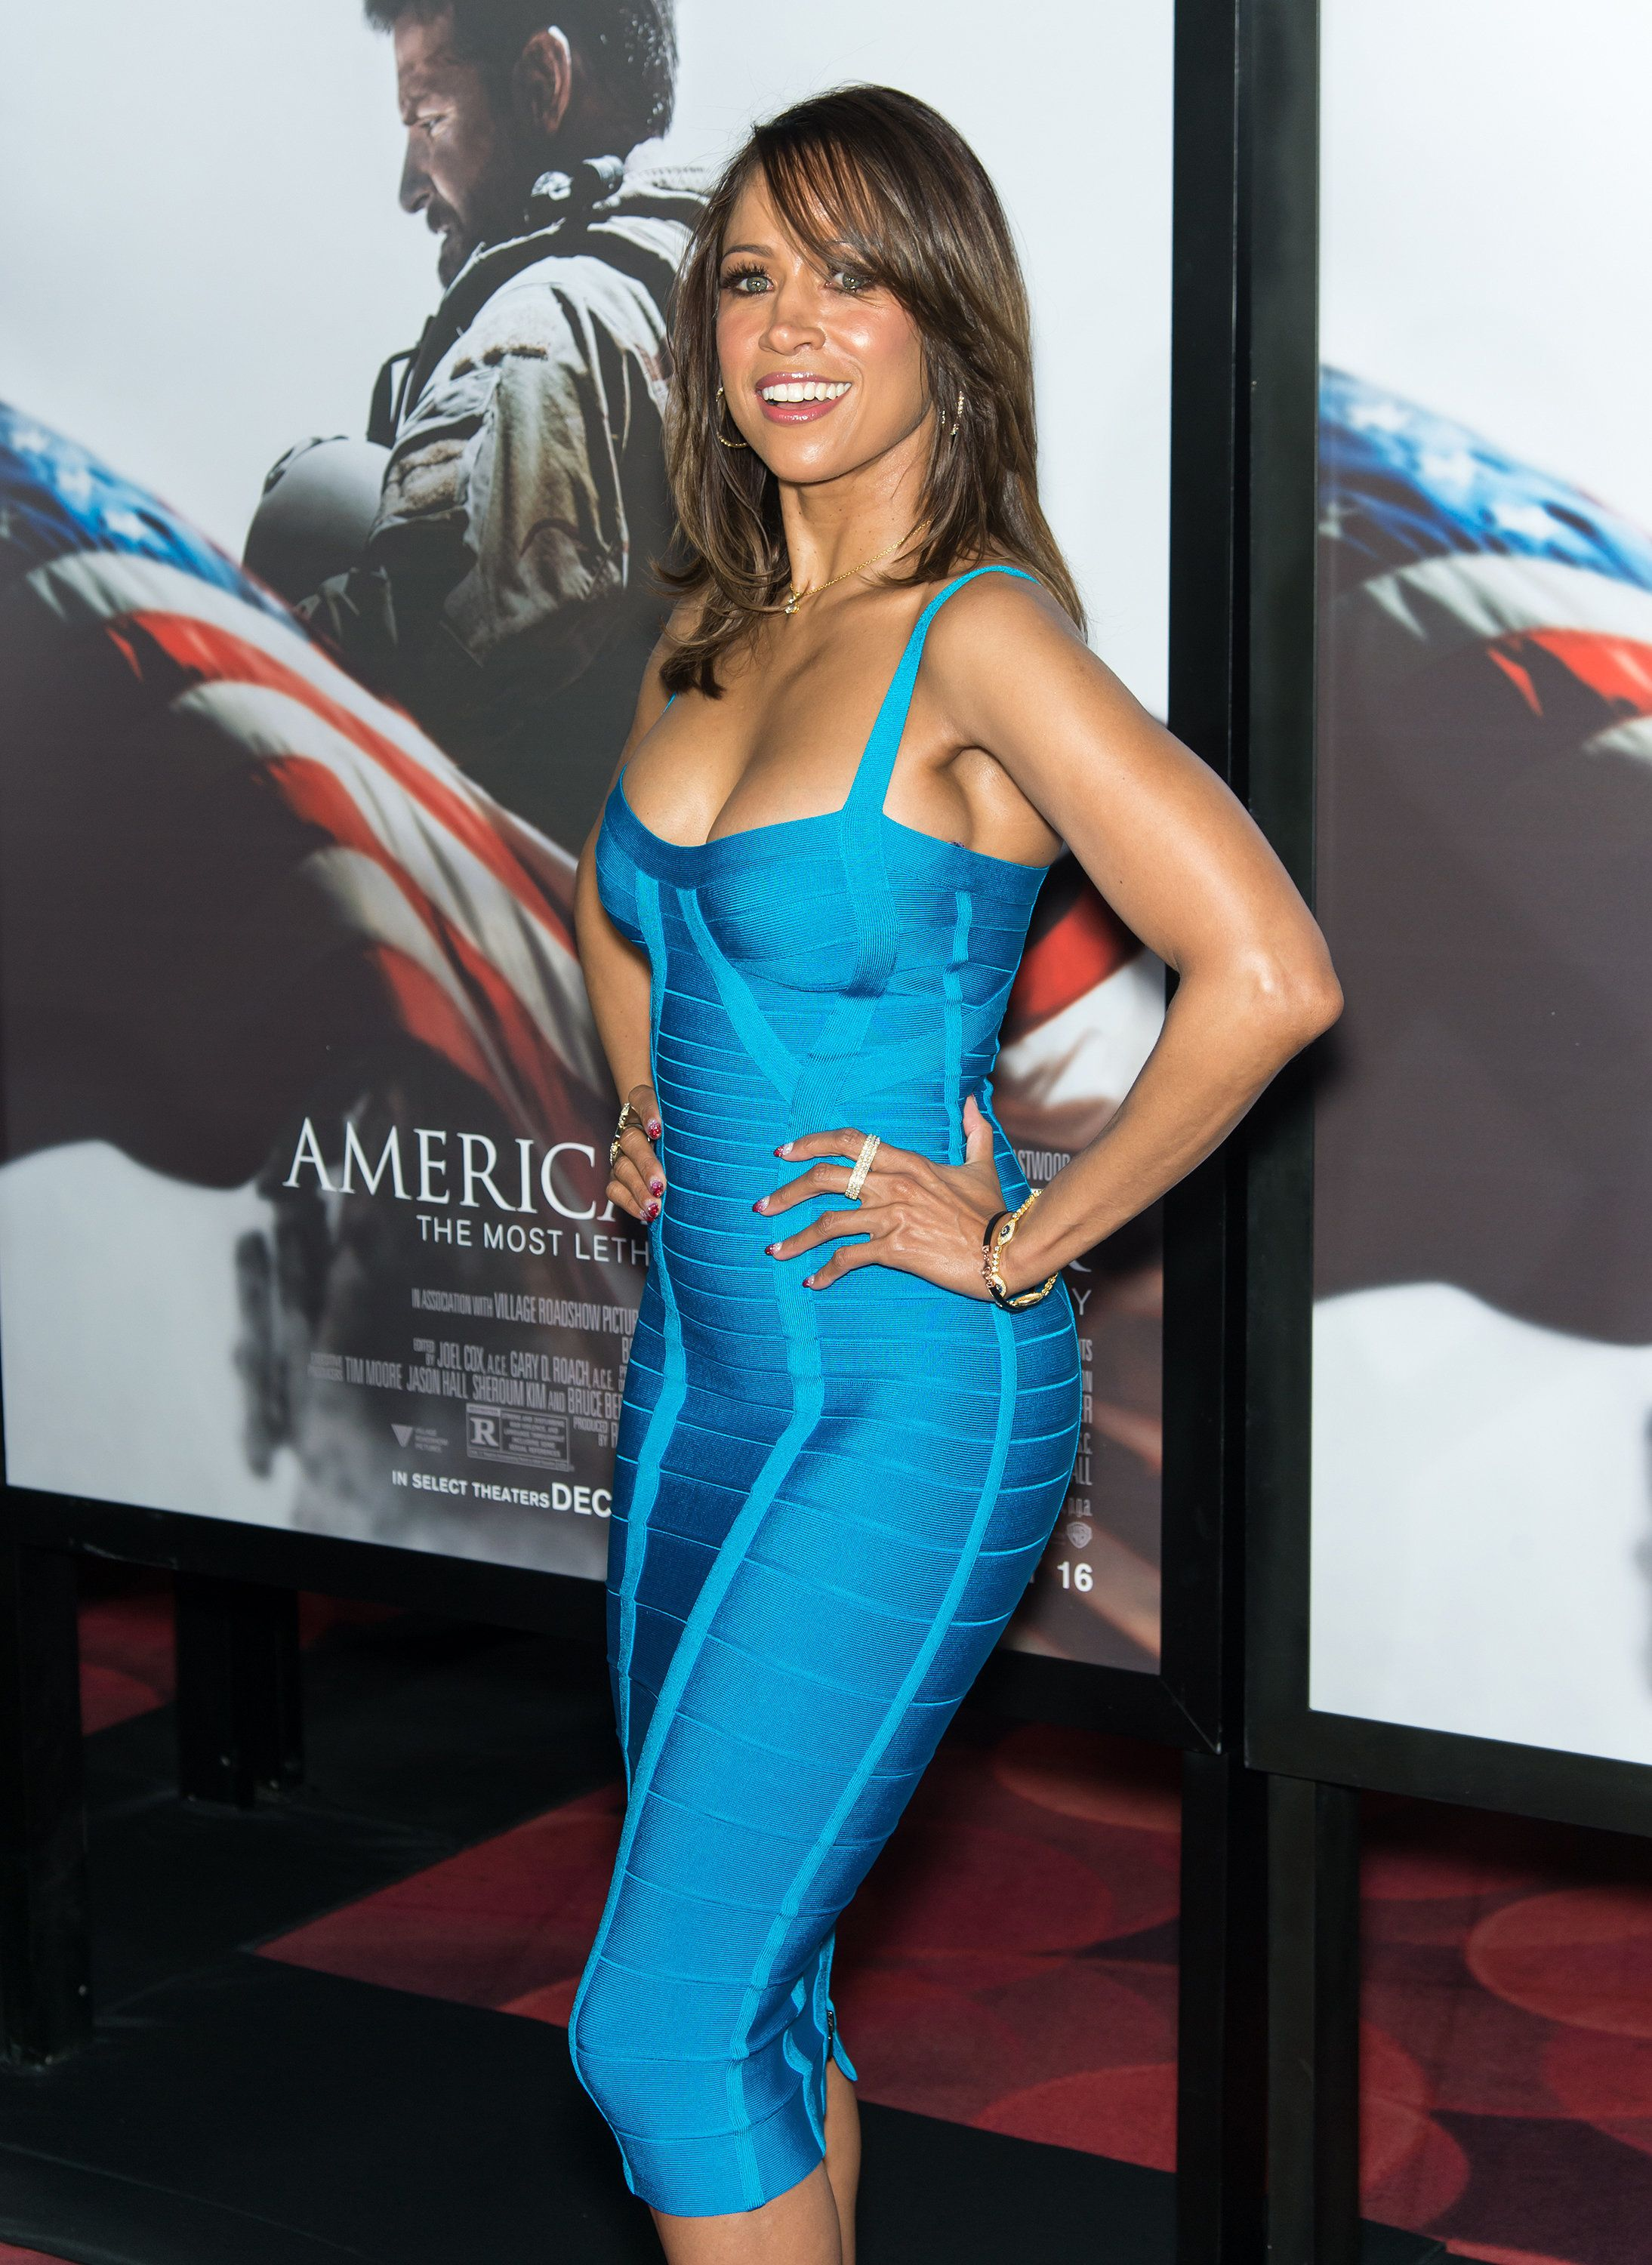 NEW YORK, NY - DECEMBER 15:  Actress Stacey Dash attends the 'American Sniper' New York Premiere at Frederick P. Rose Hall, Jazz at Lincoln Center on December 15, 2014 in New York City.  (Photo by Gilbert Carrasquillo/FilmMagic)